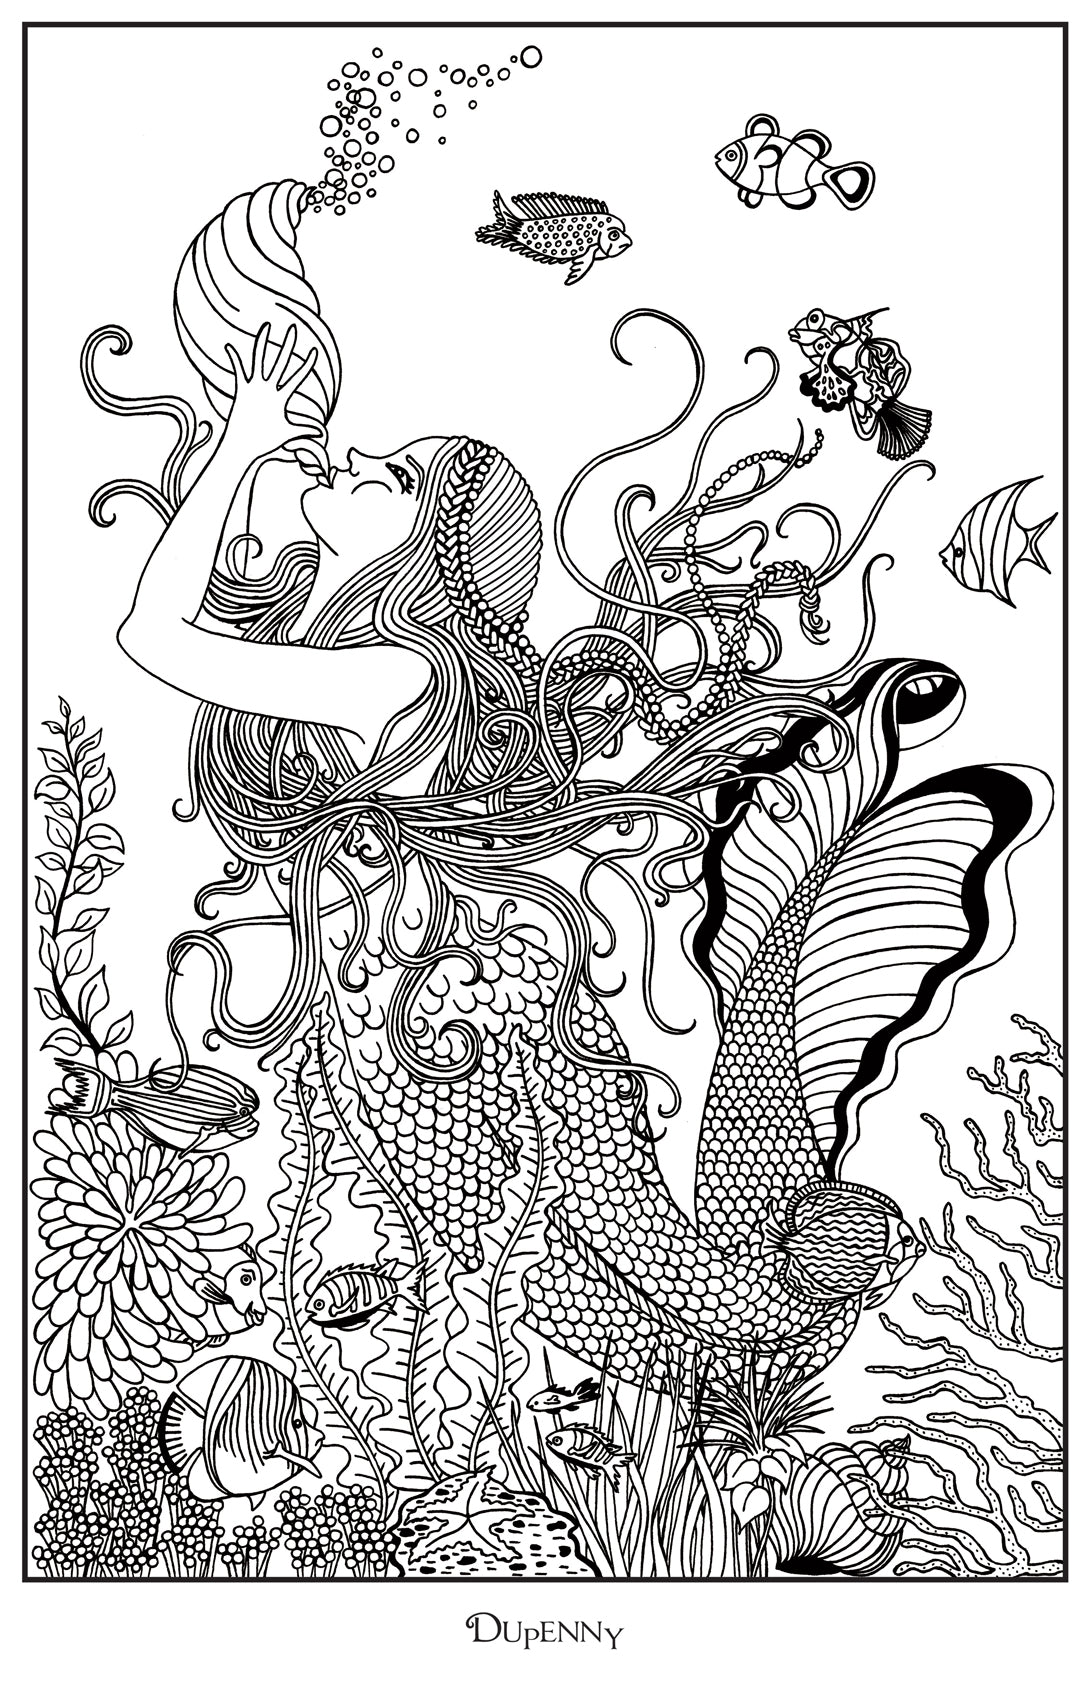 Dupenny A4 Mermaid 'Melody' Colouring Poster FREE